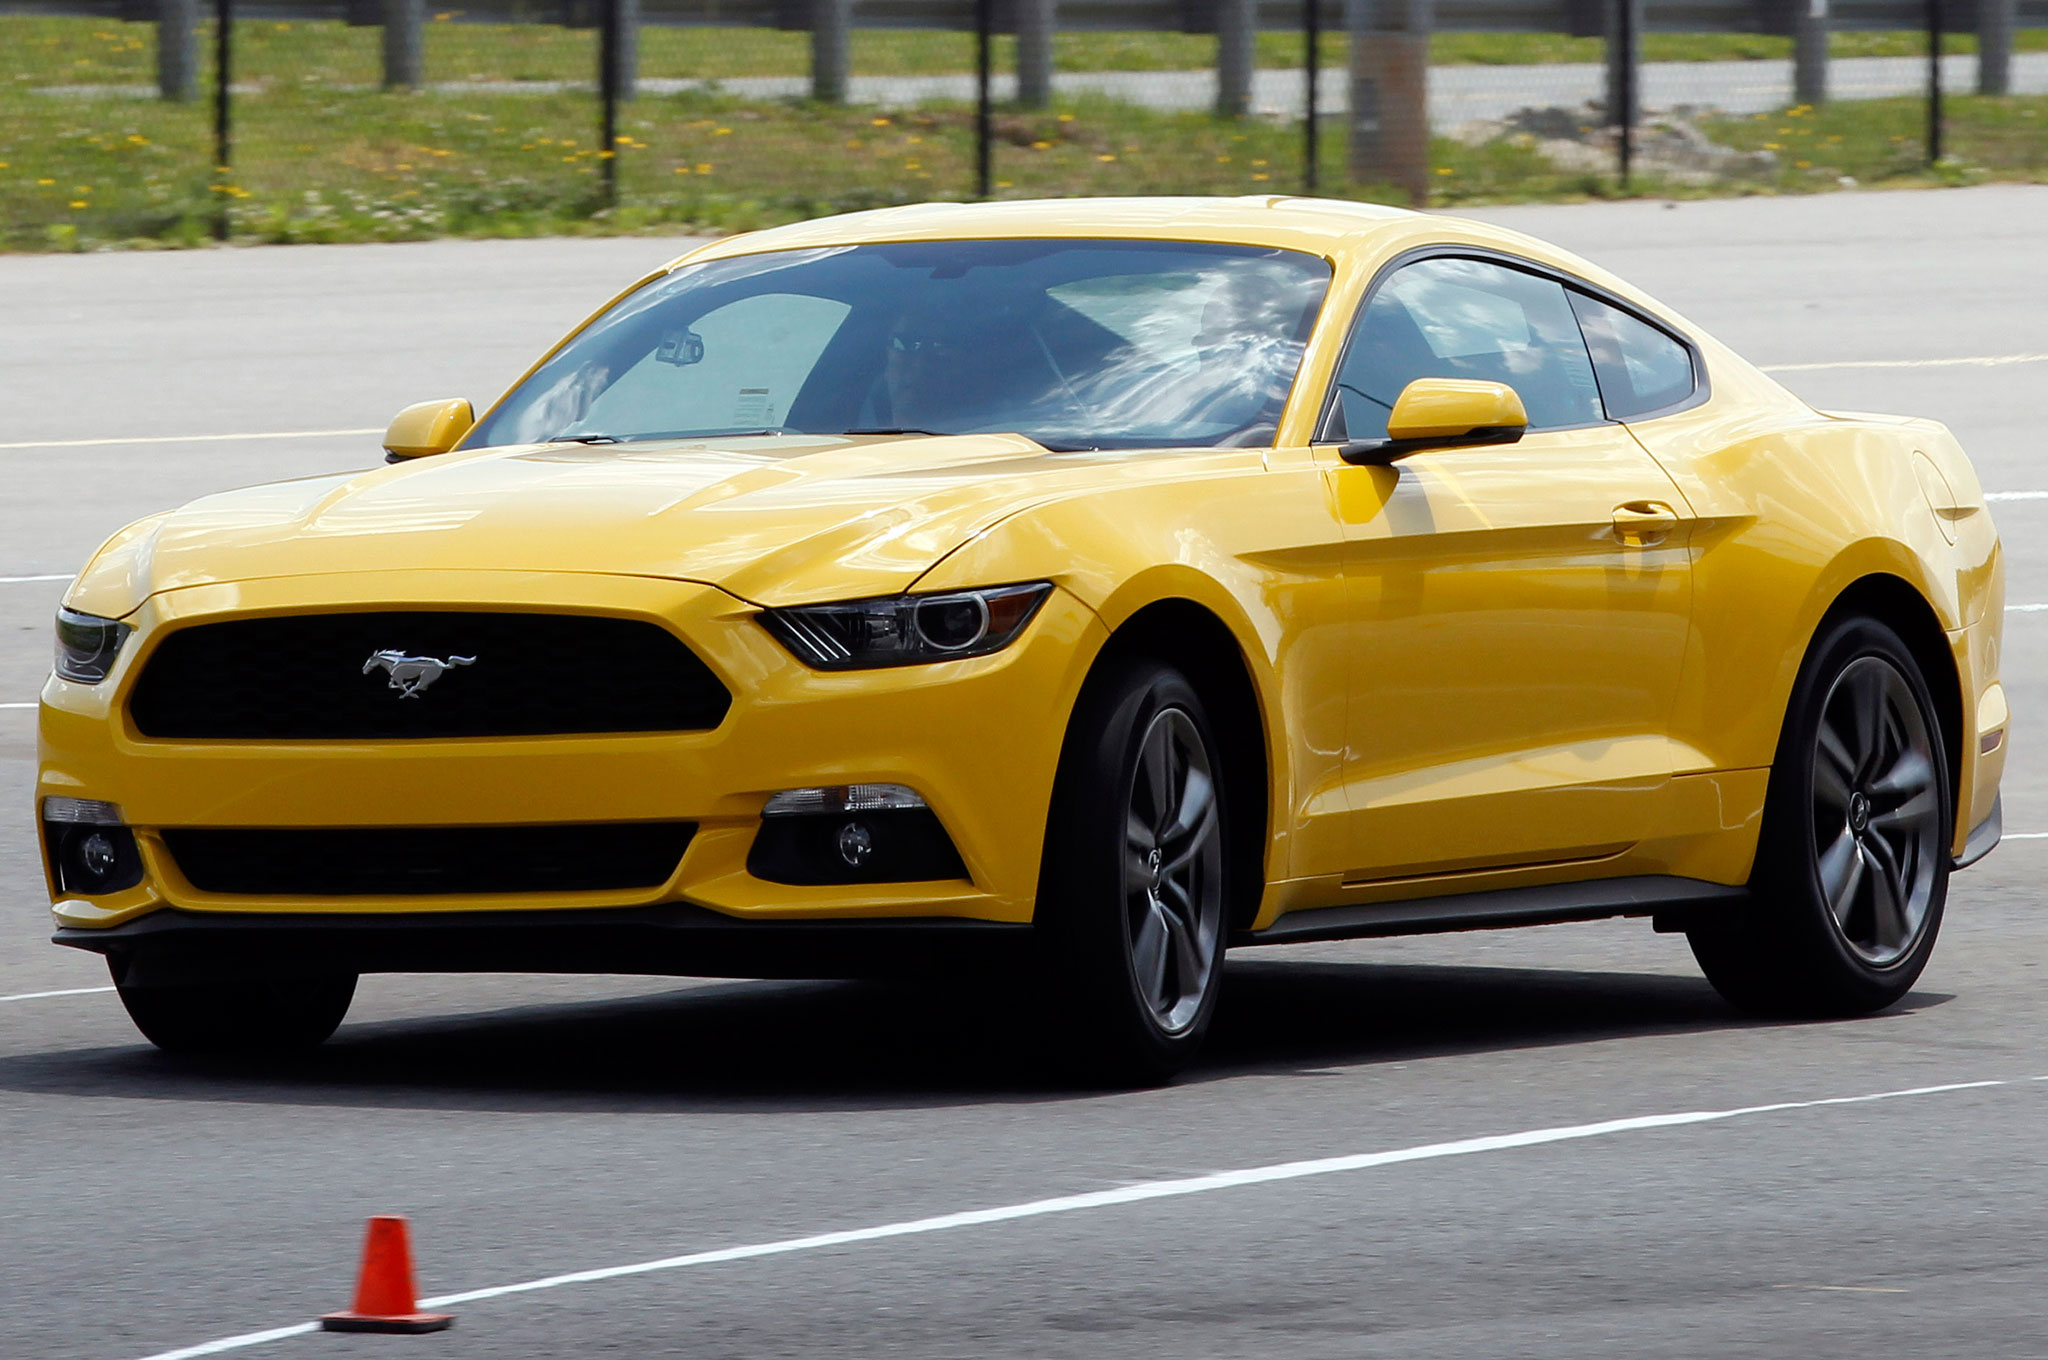 Ford Mustang 2.3 Ecoboost Yellow